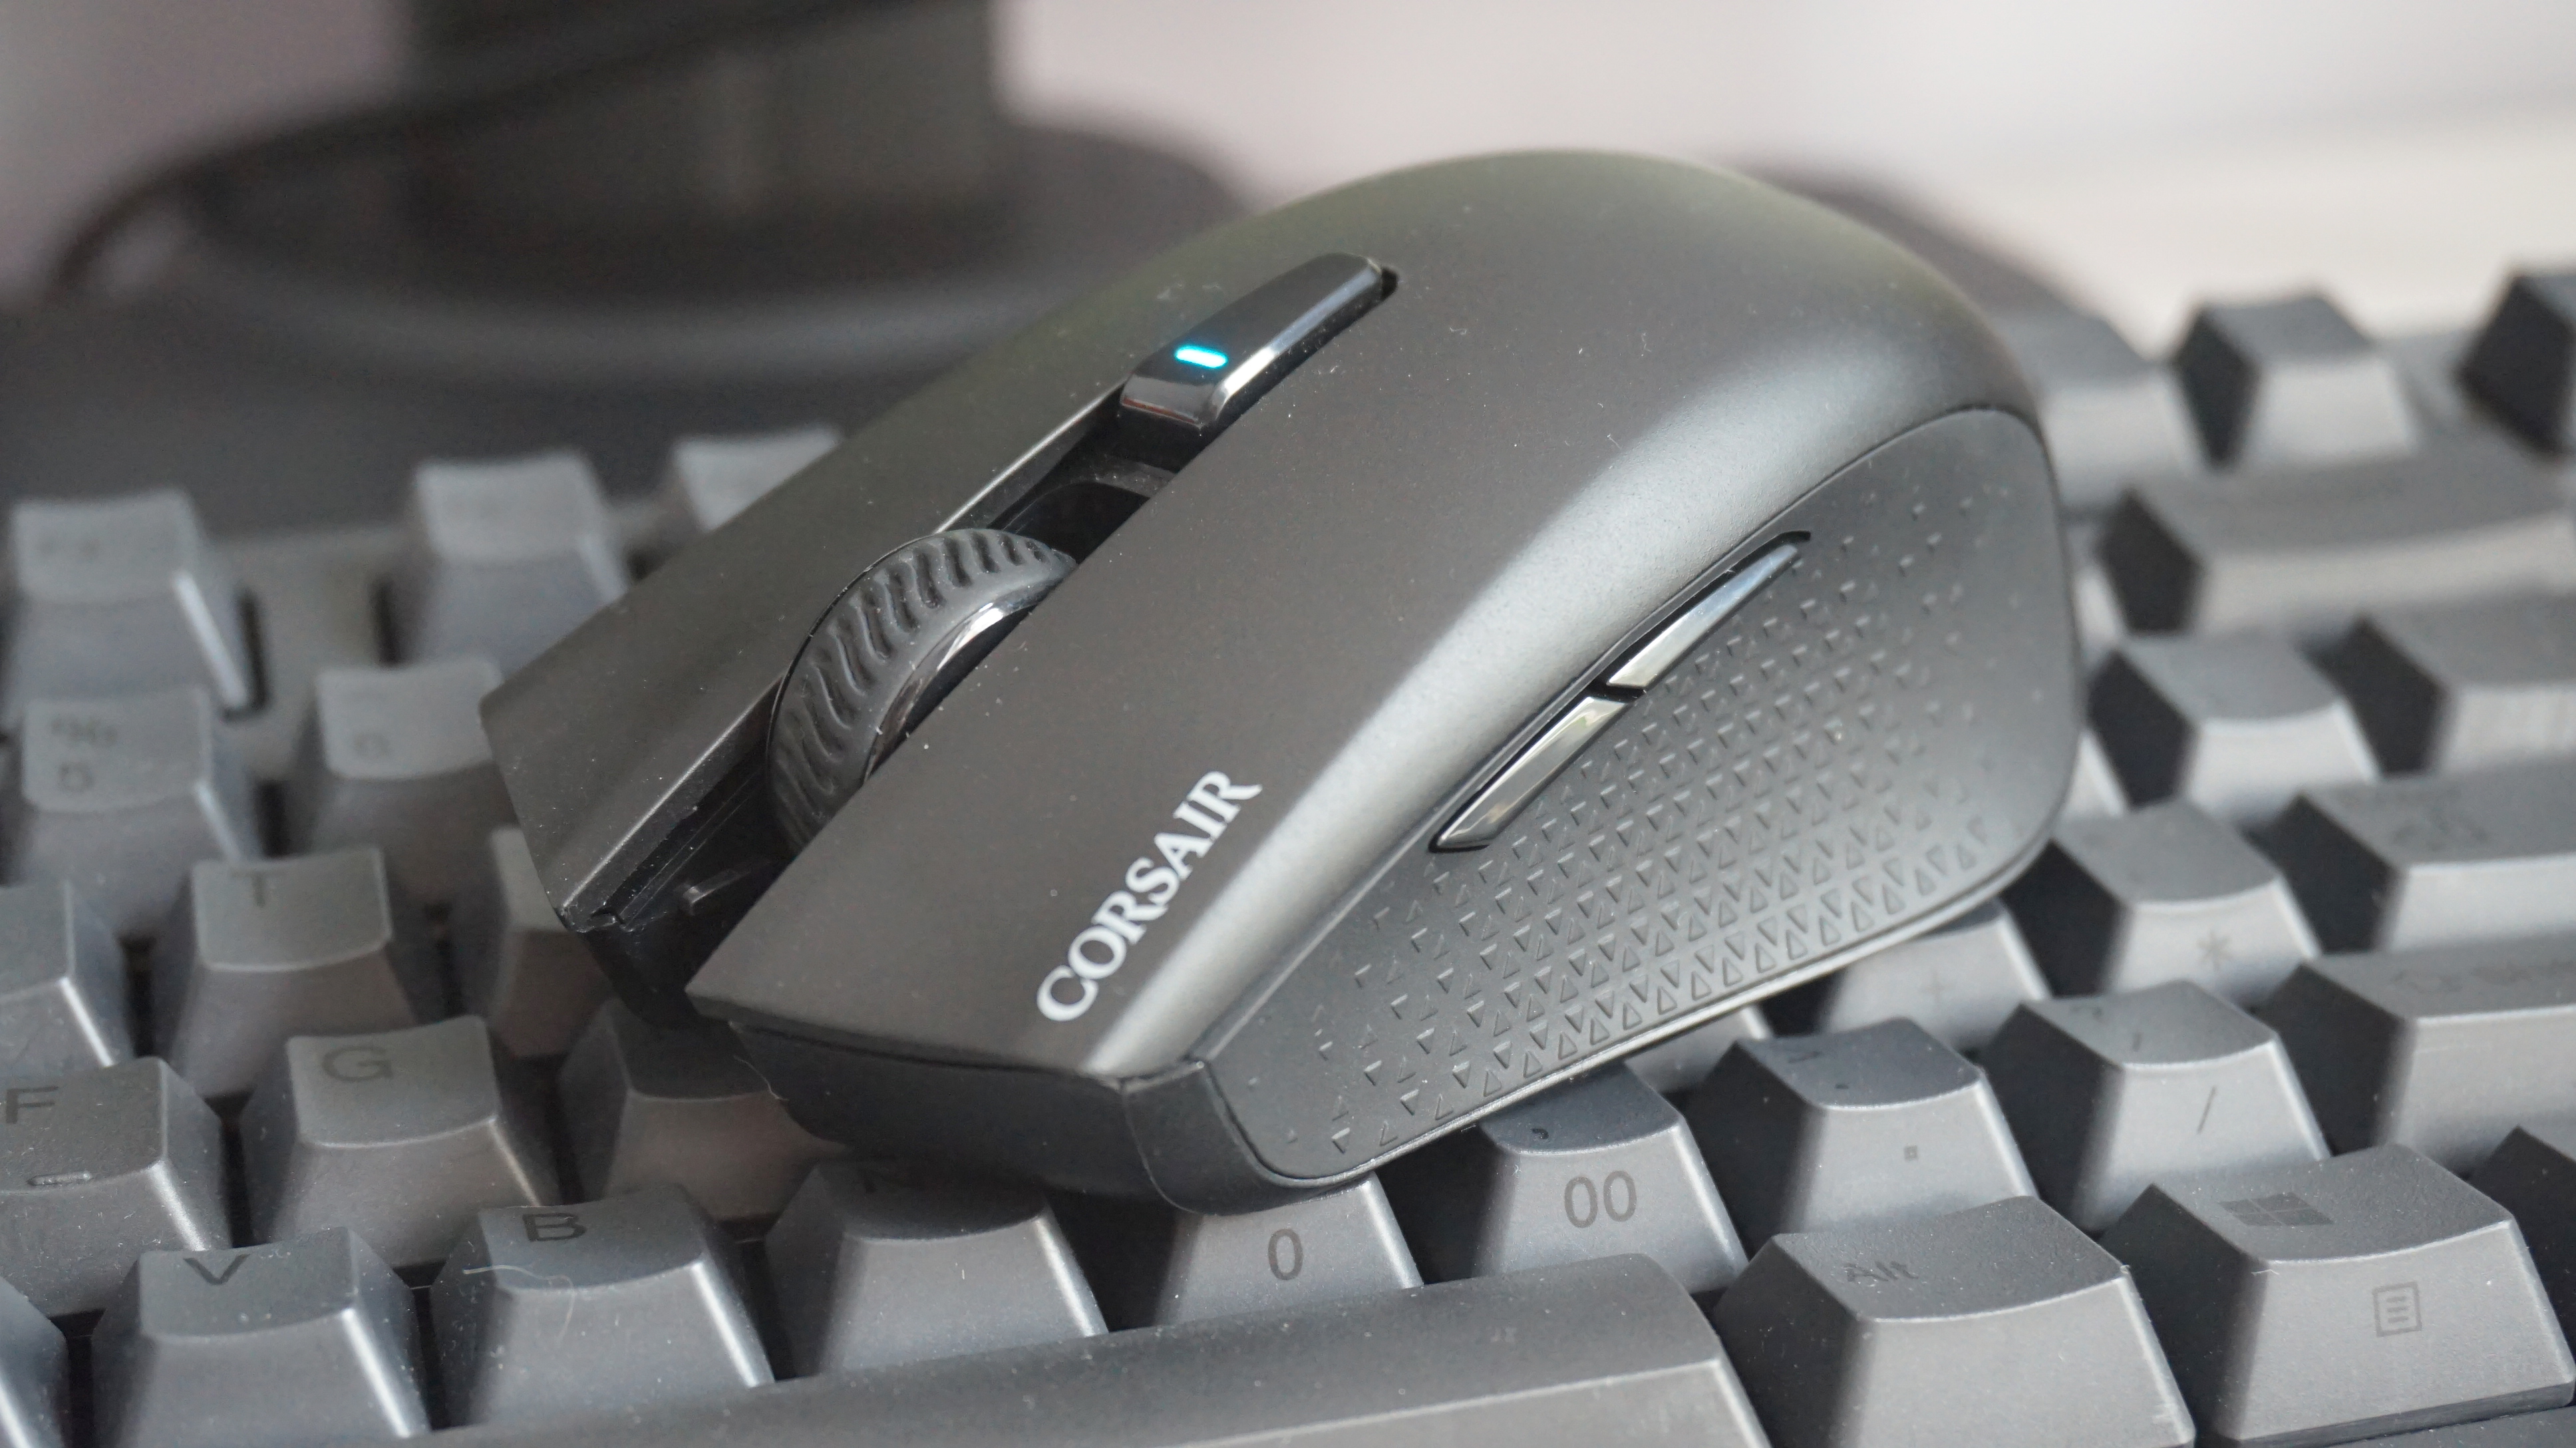 Corsair Harpoon RGB Wireless review: An incredible wireless